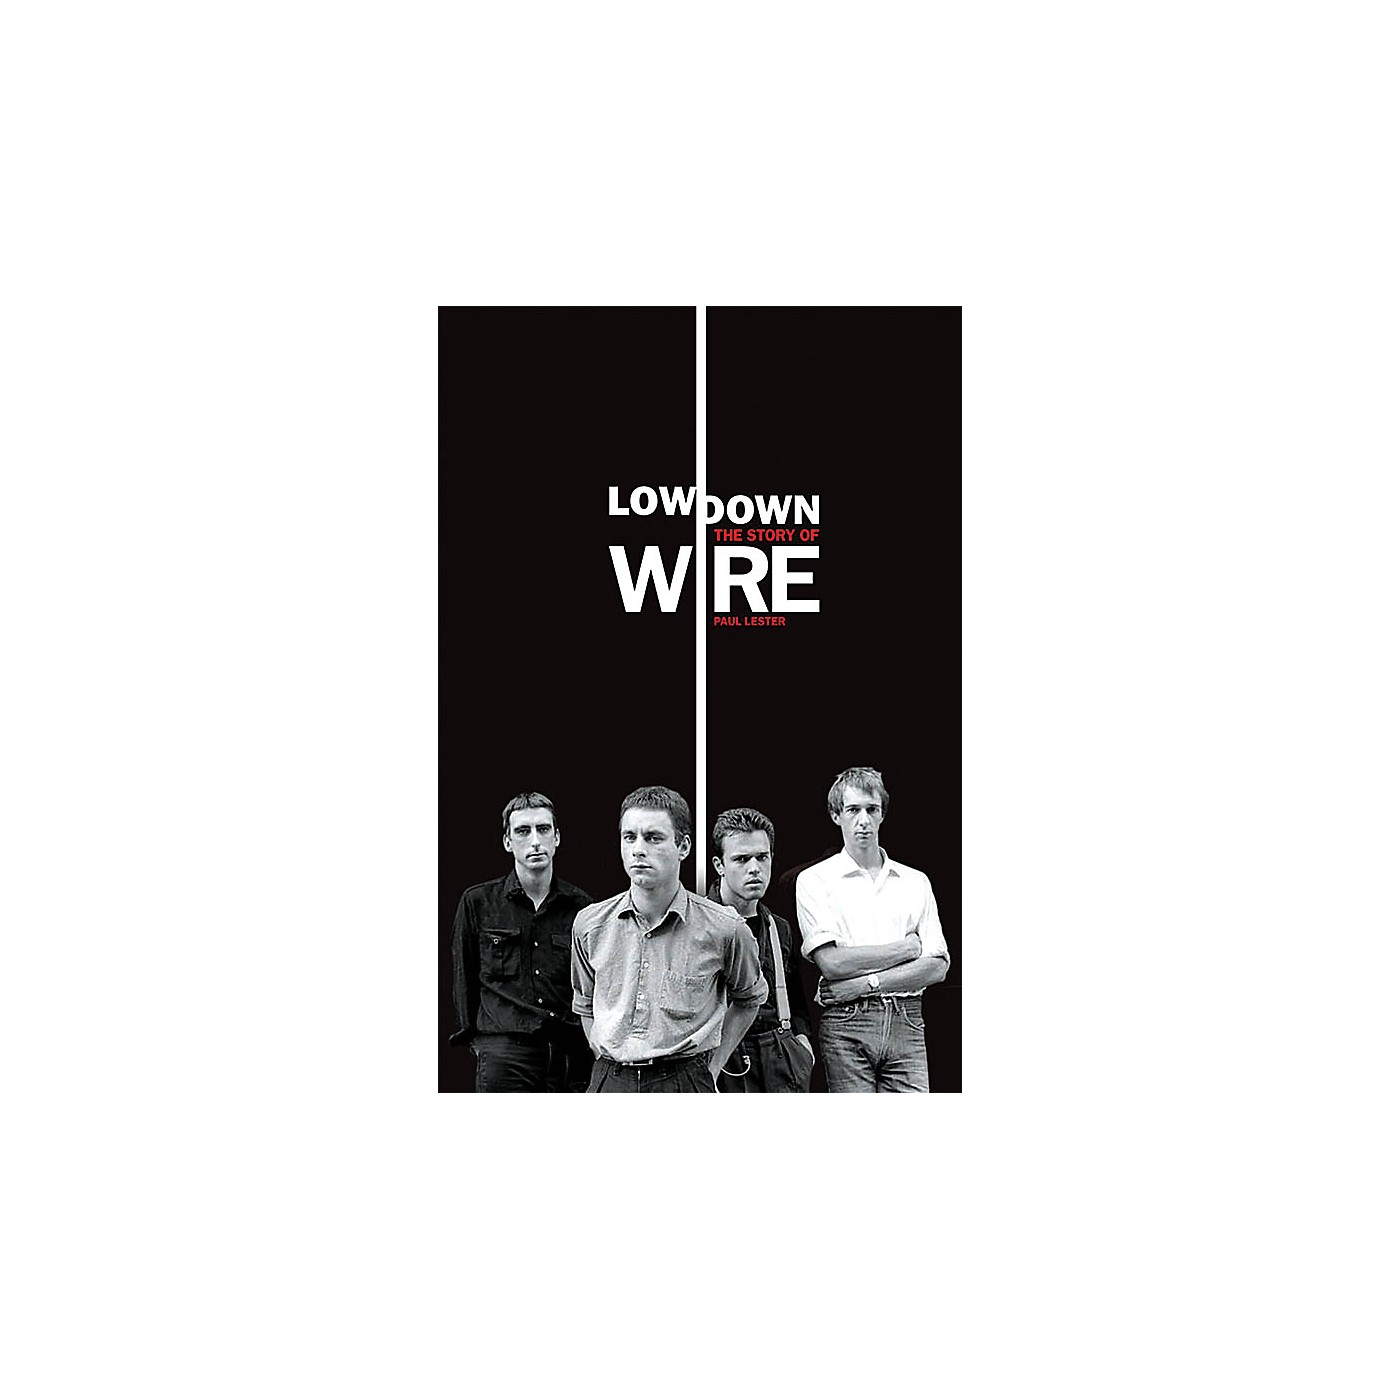 Omnibus Lowdown - The Story of Wire Omnibus Press Series Softcover thumbnail